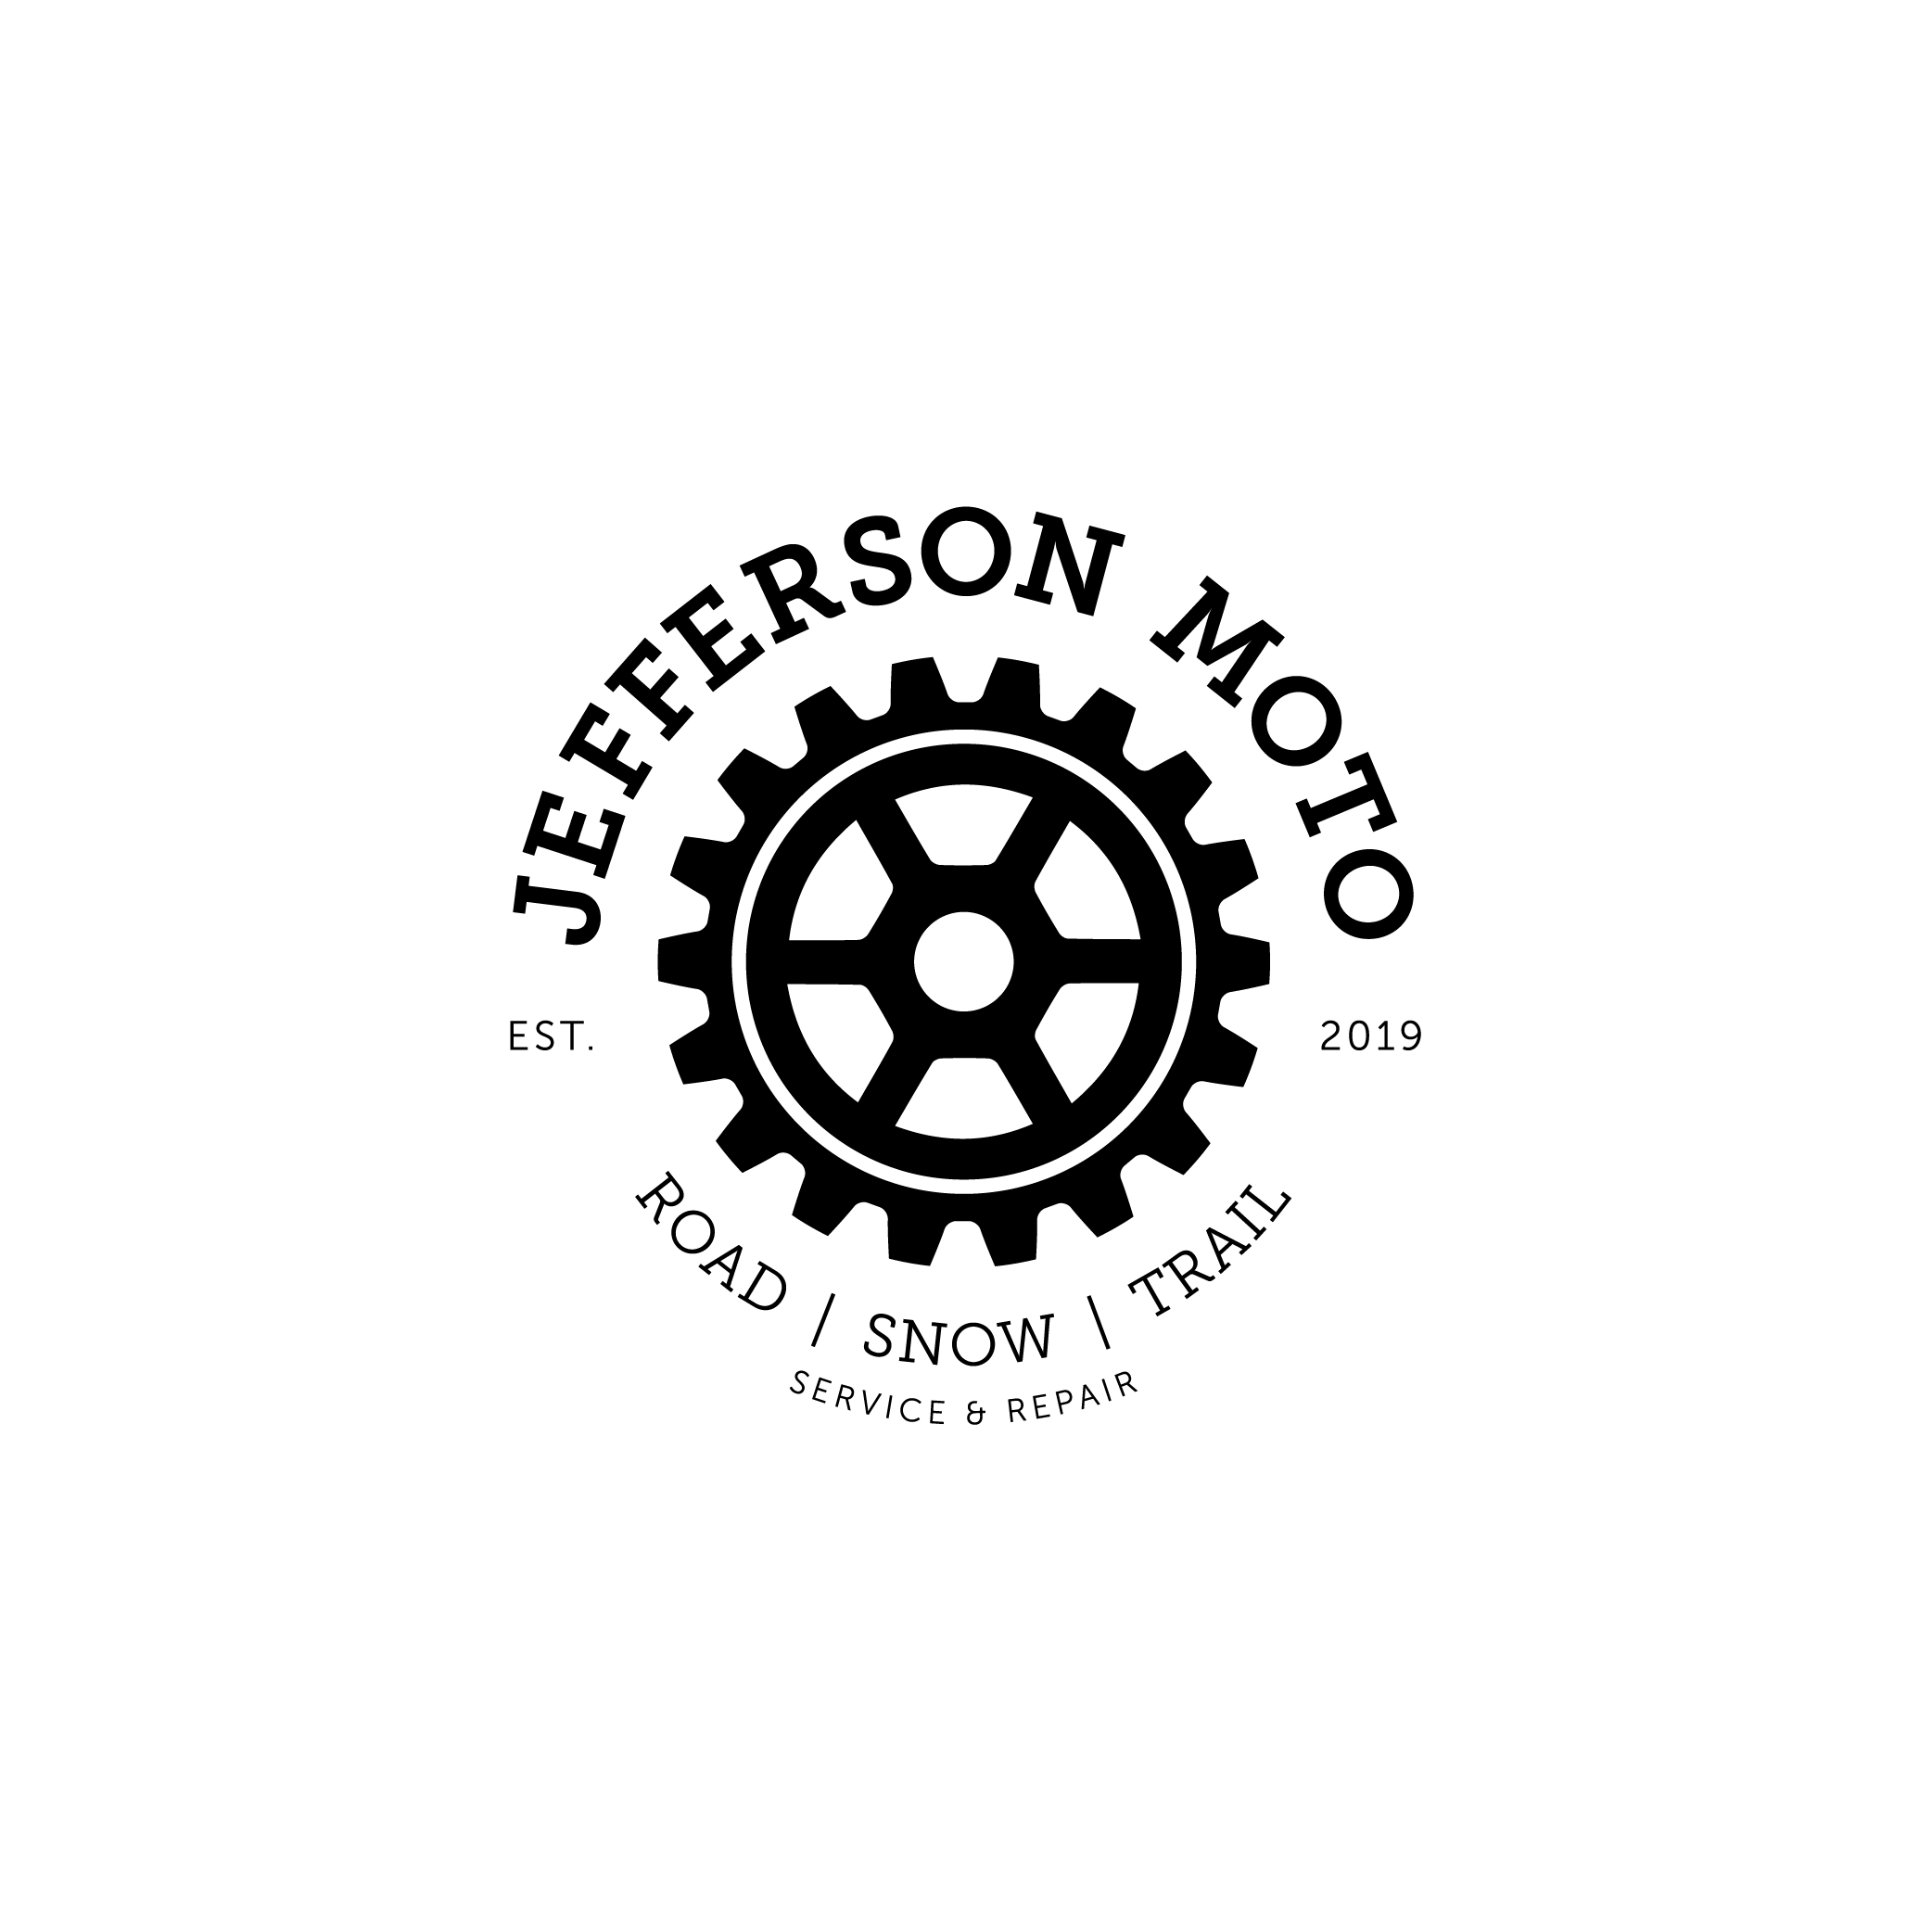 jeffmoto_logo-01.png